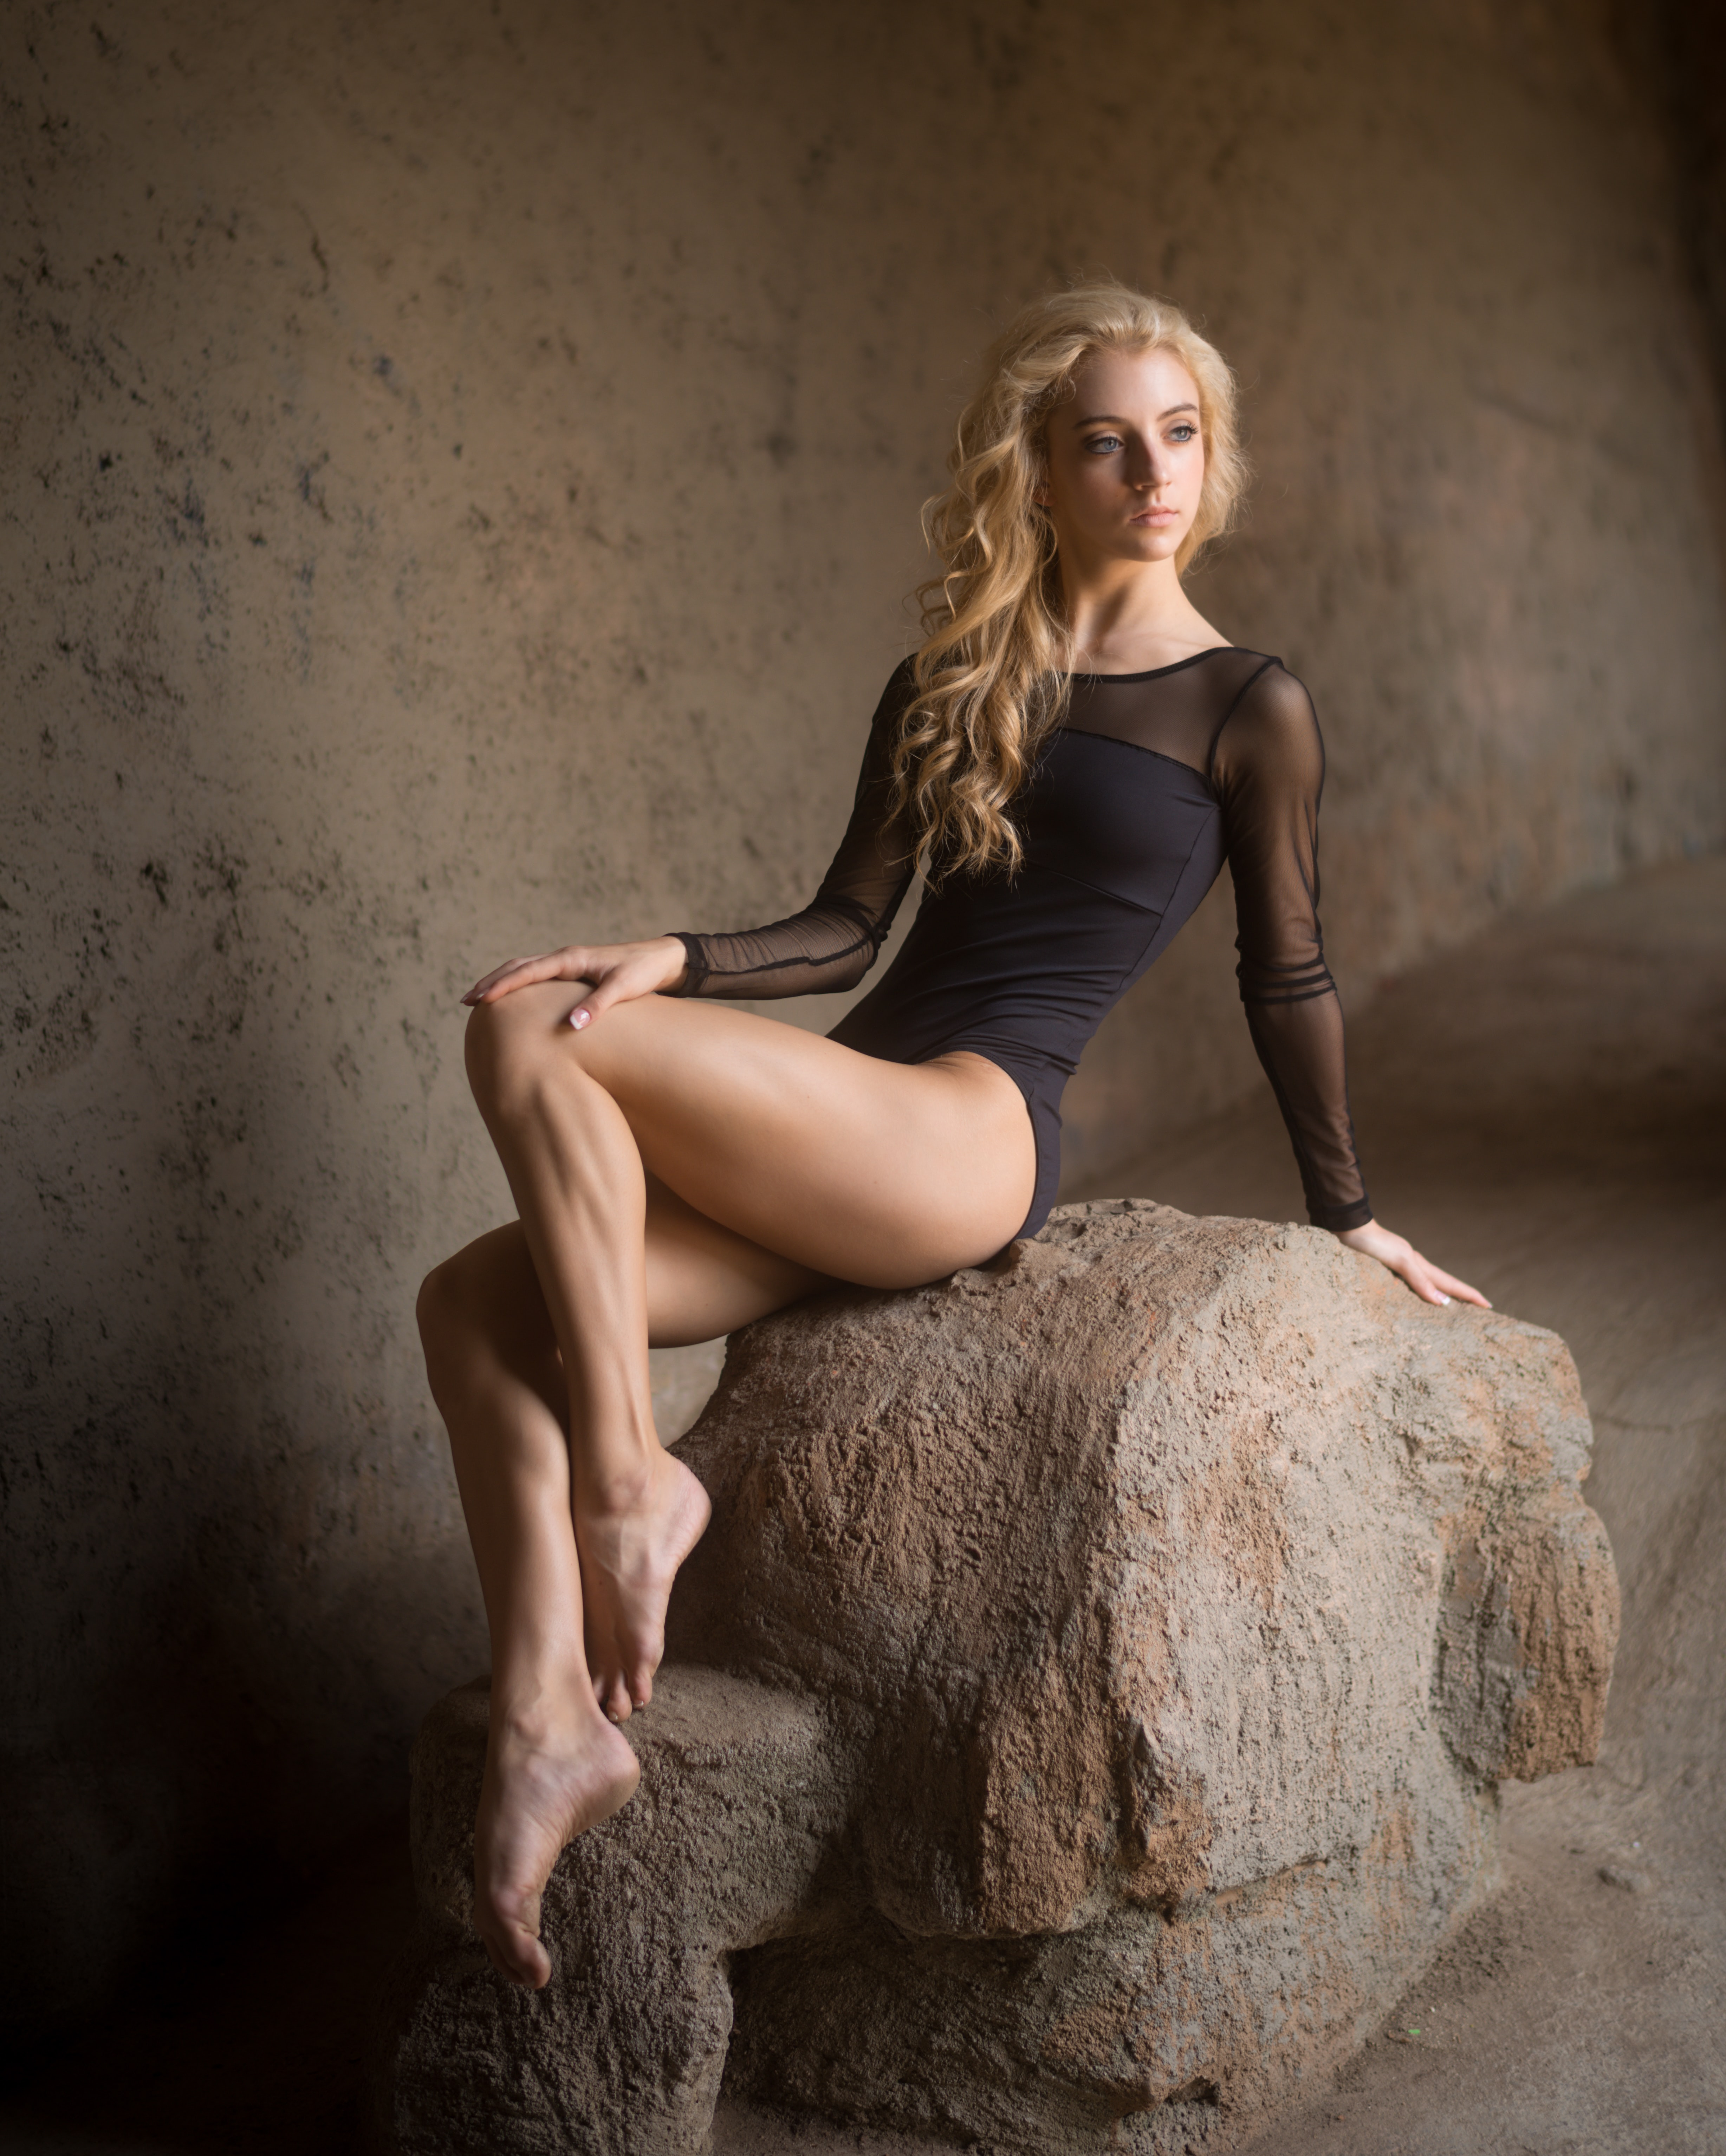 woman wearing body suit sitting on rock